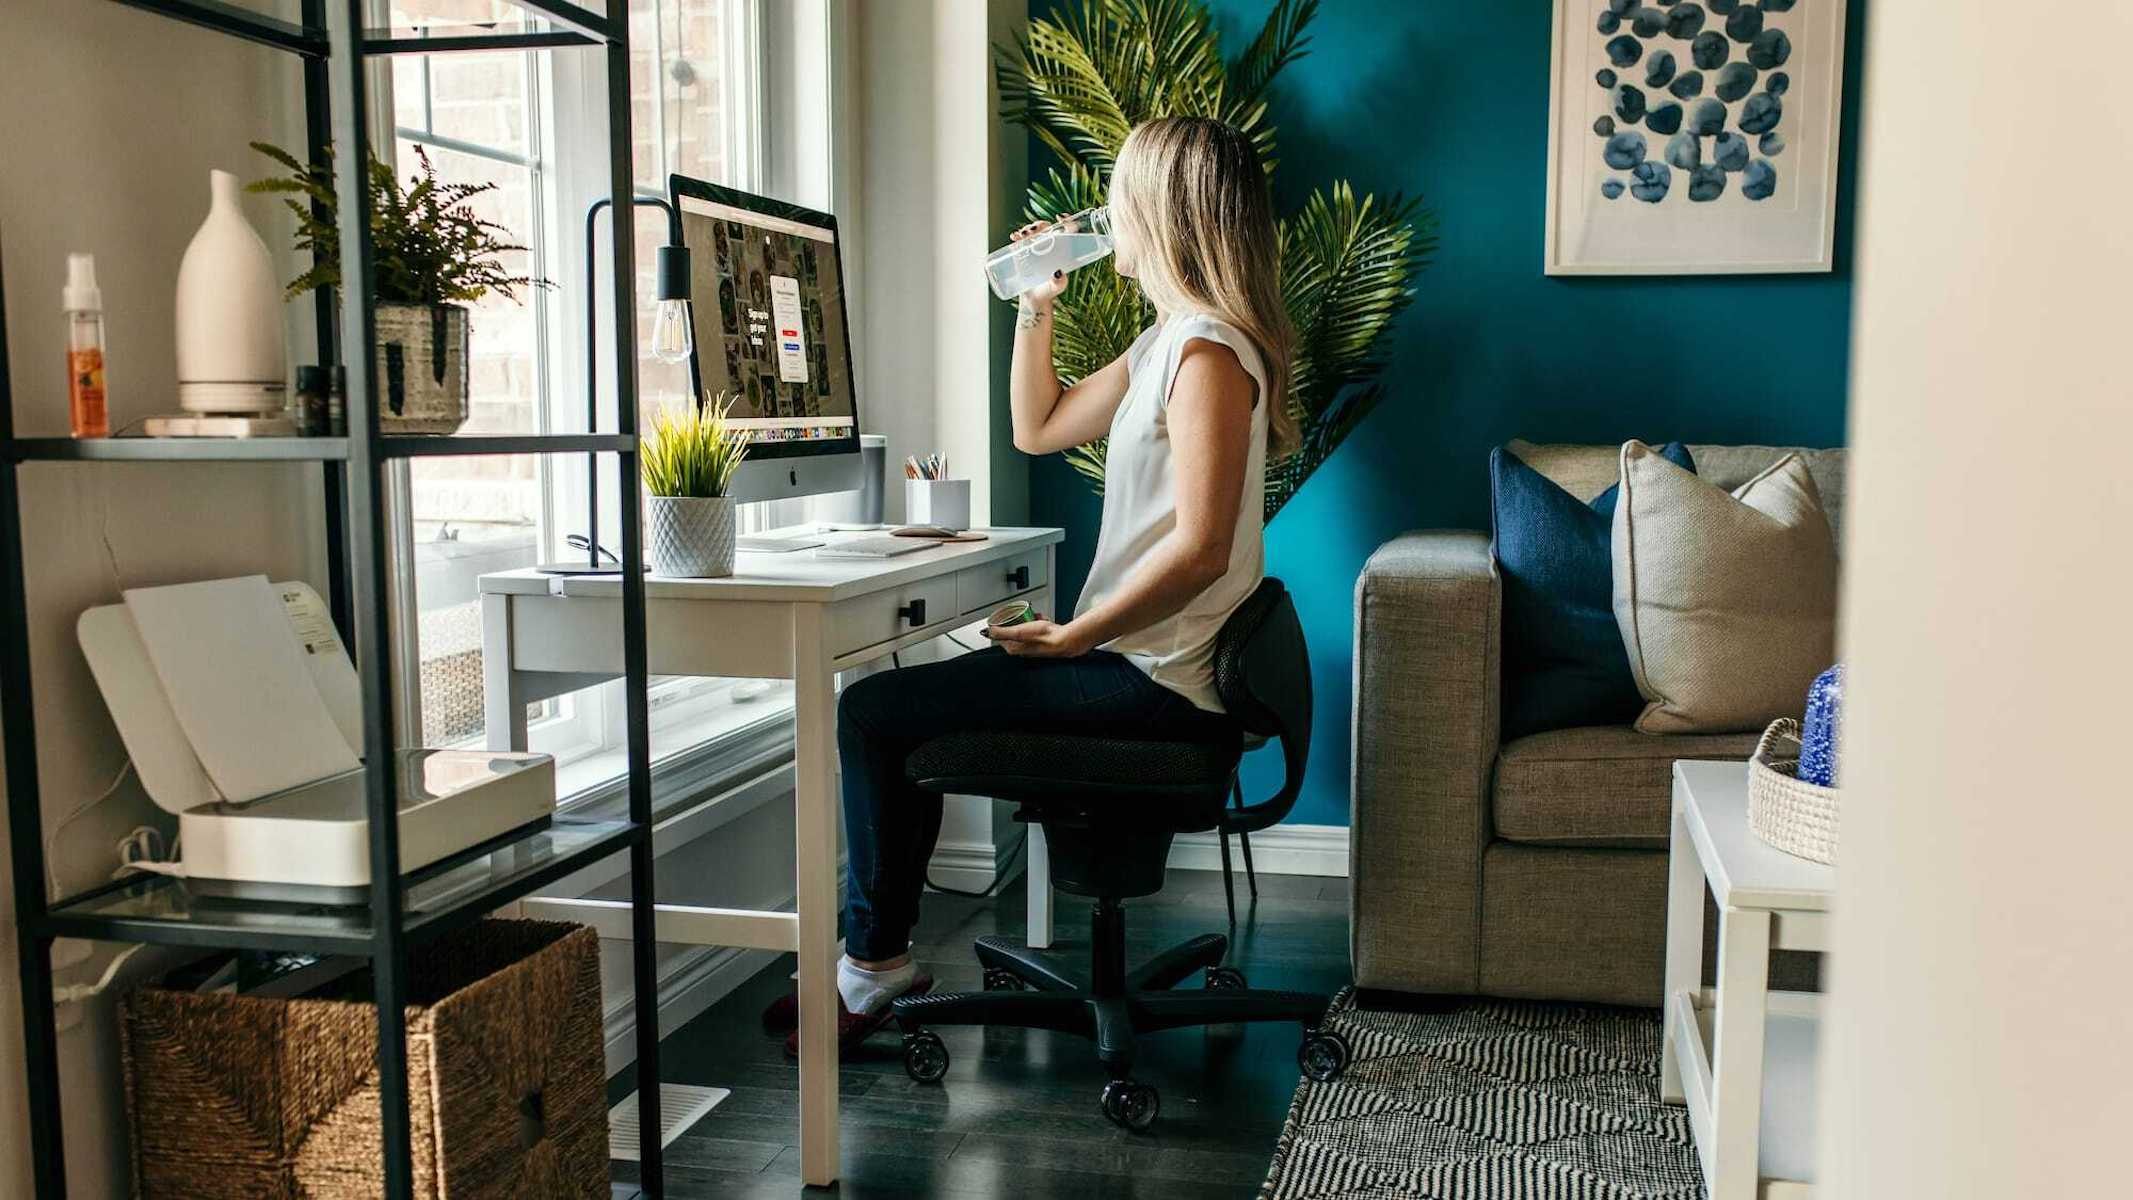 Best-home-office-furniture-worth-investing-in-2021-featured.jpeg